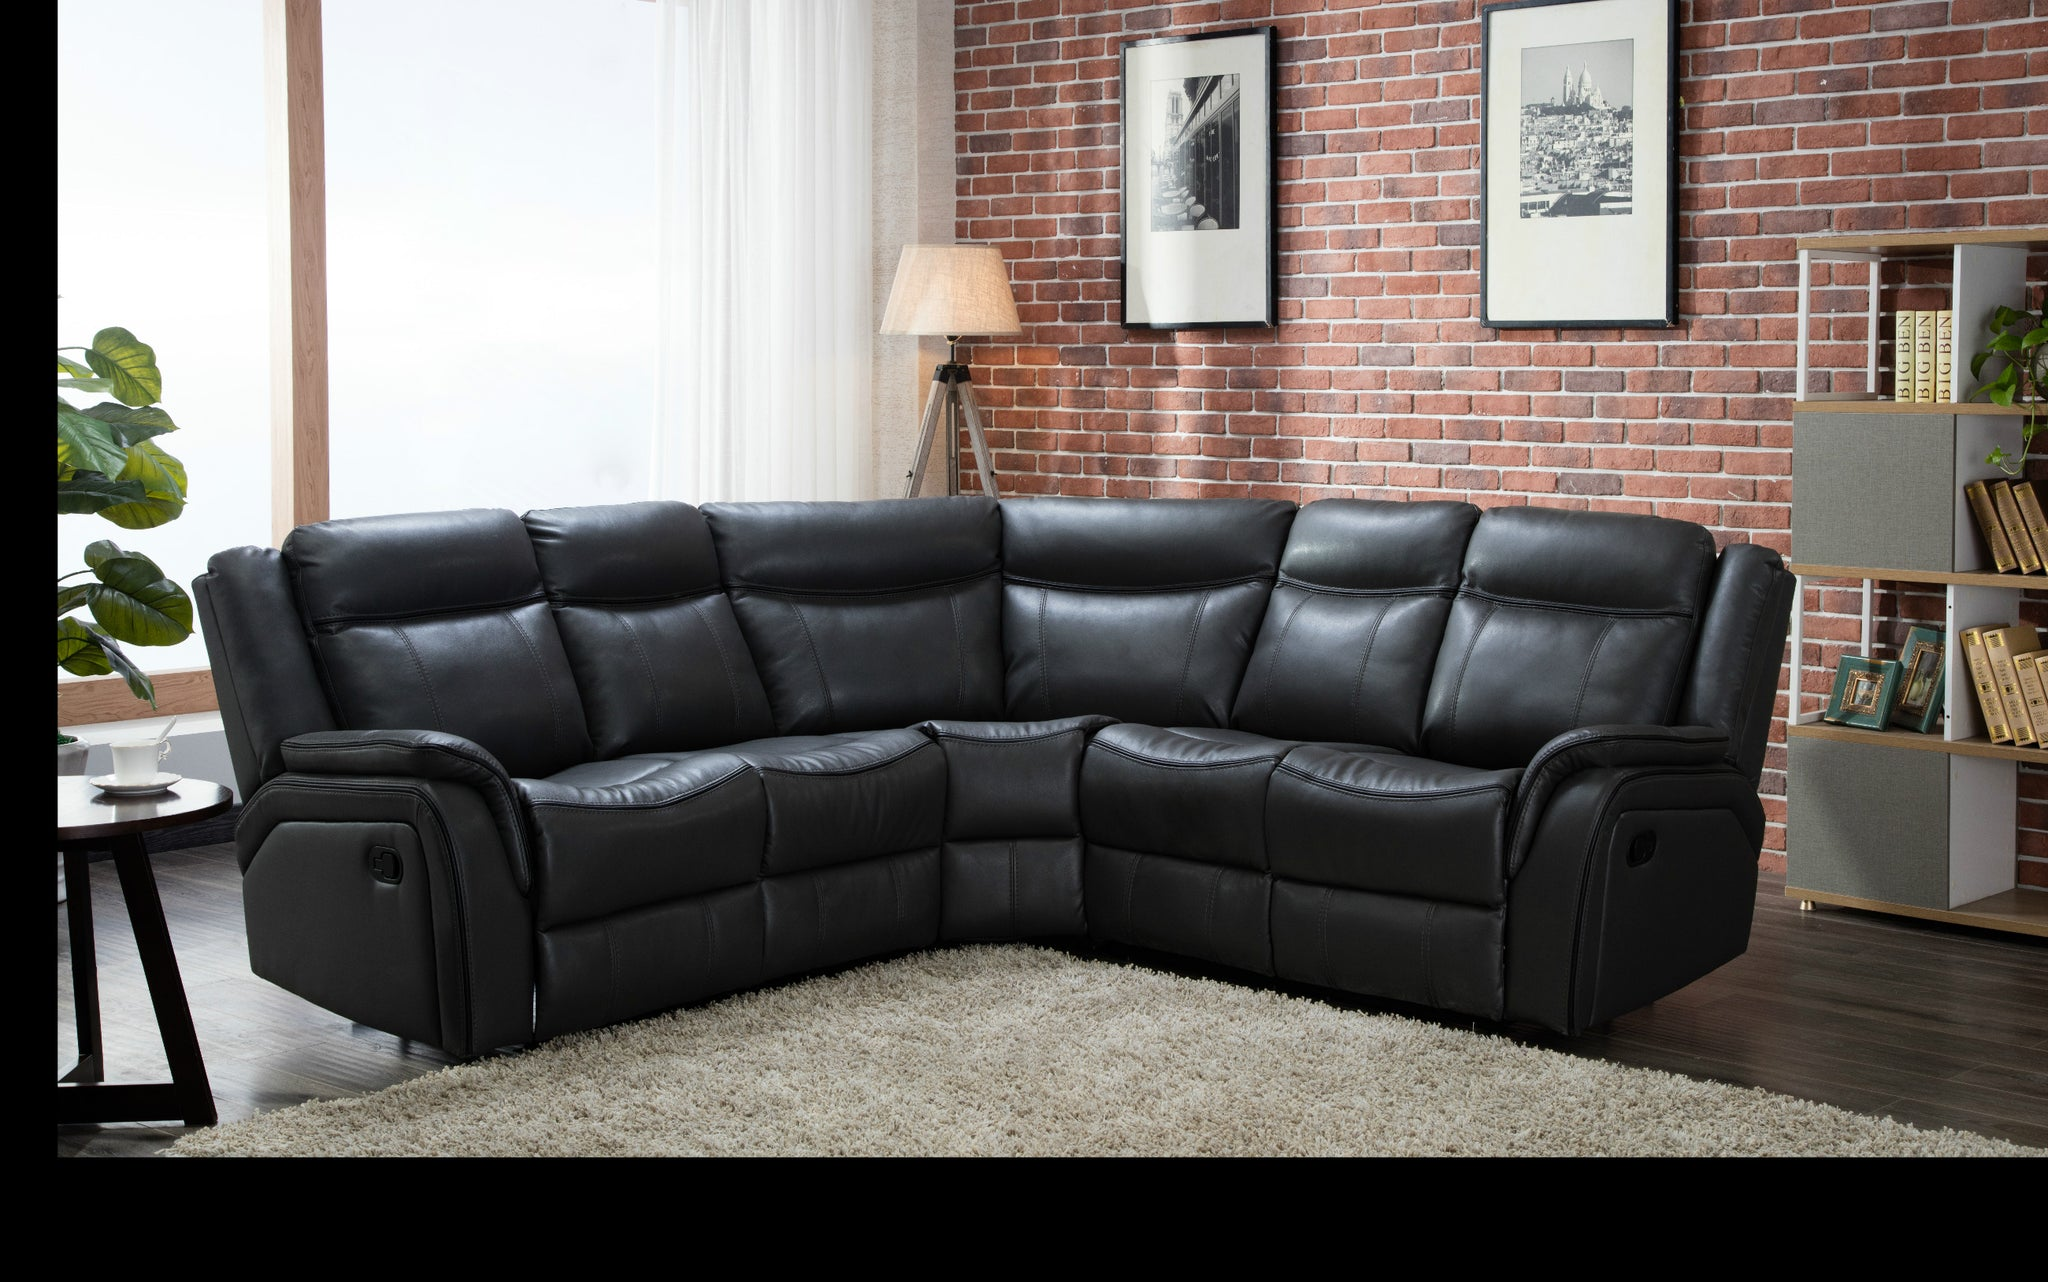 Awe Inspiring Manual Recliner Corner Sofa Leather Air Black Caraccident5 Cool Chair Designs And Ideas Caraccident5Info